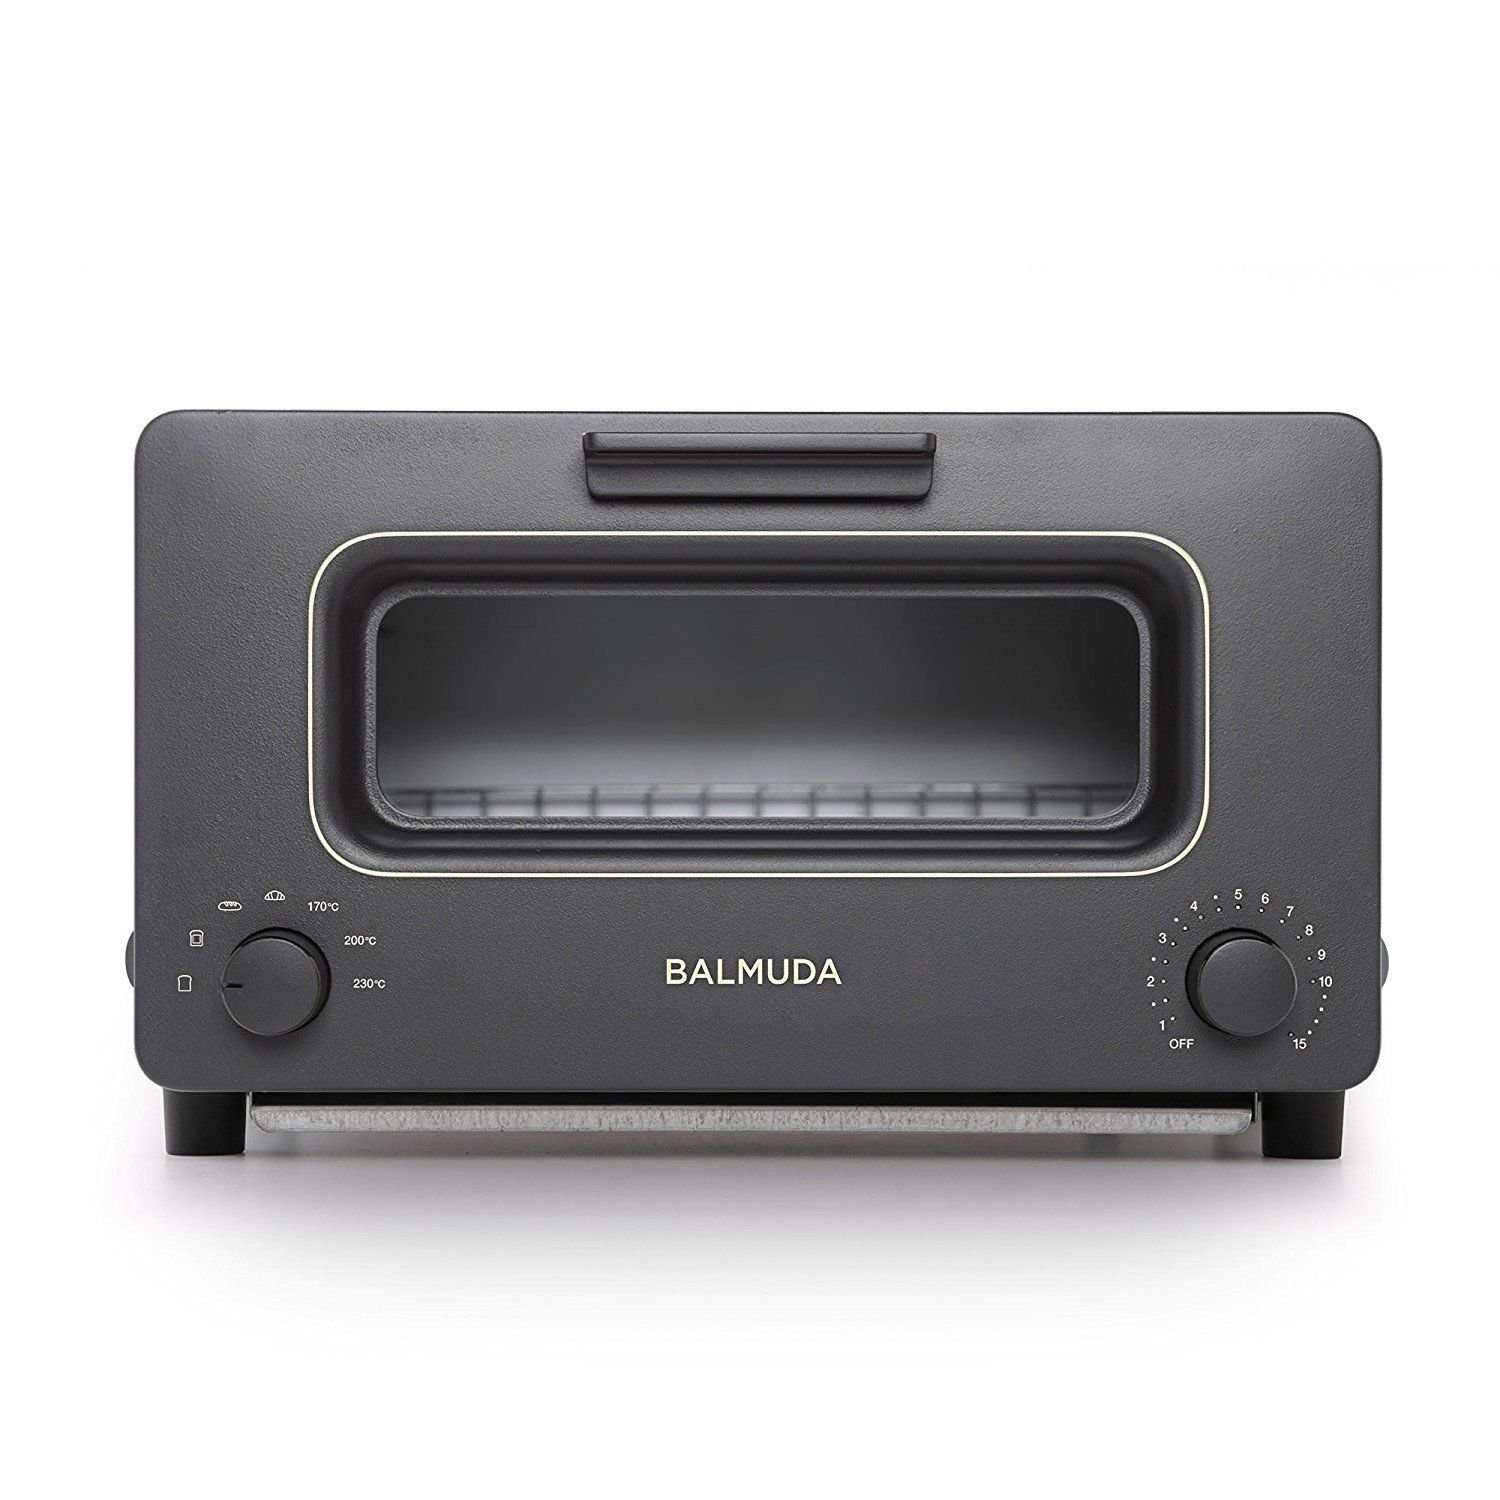 NEW BALMUDA The Steam oven toaster Black K01A-KG MIB F/S Worldwide Japan